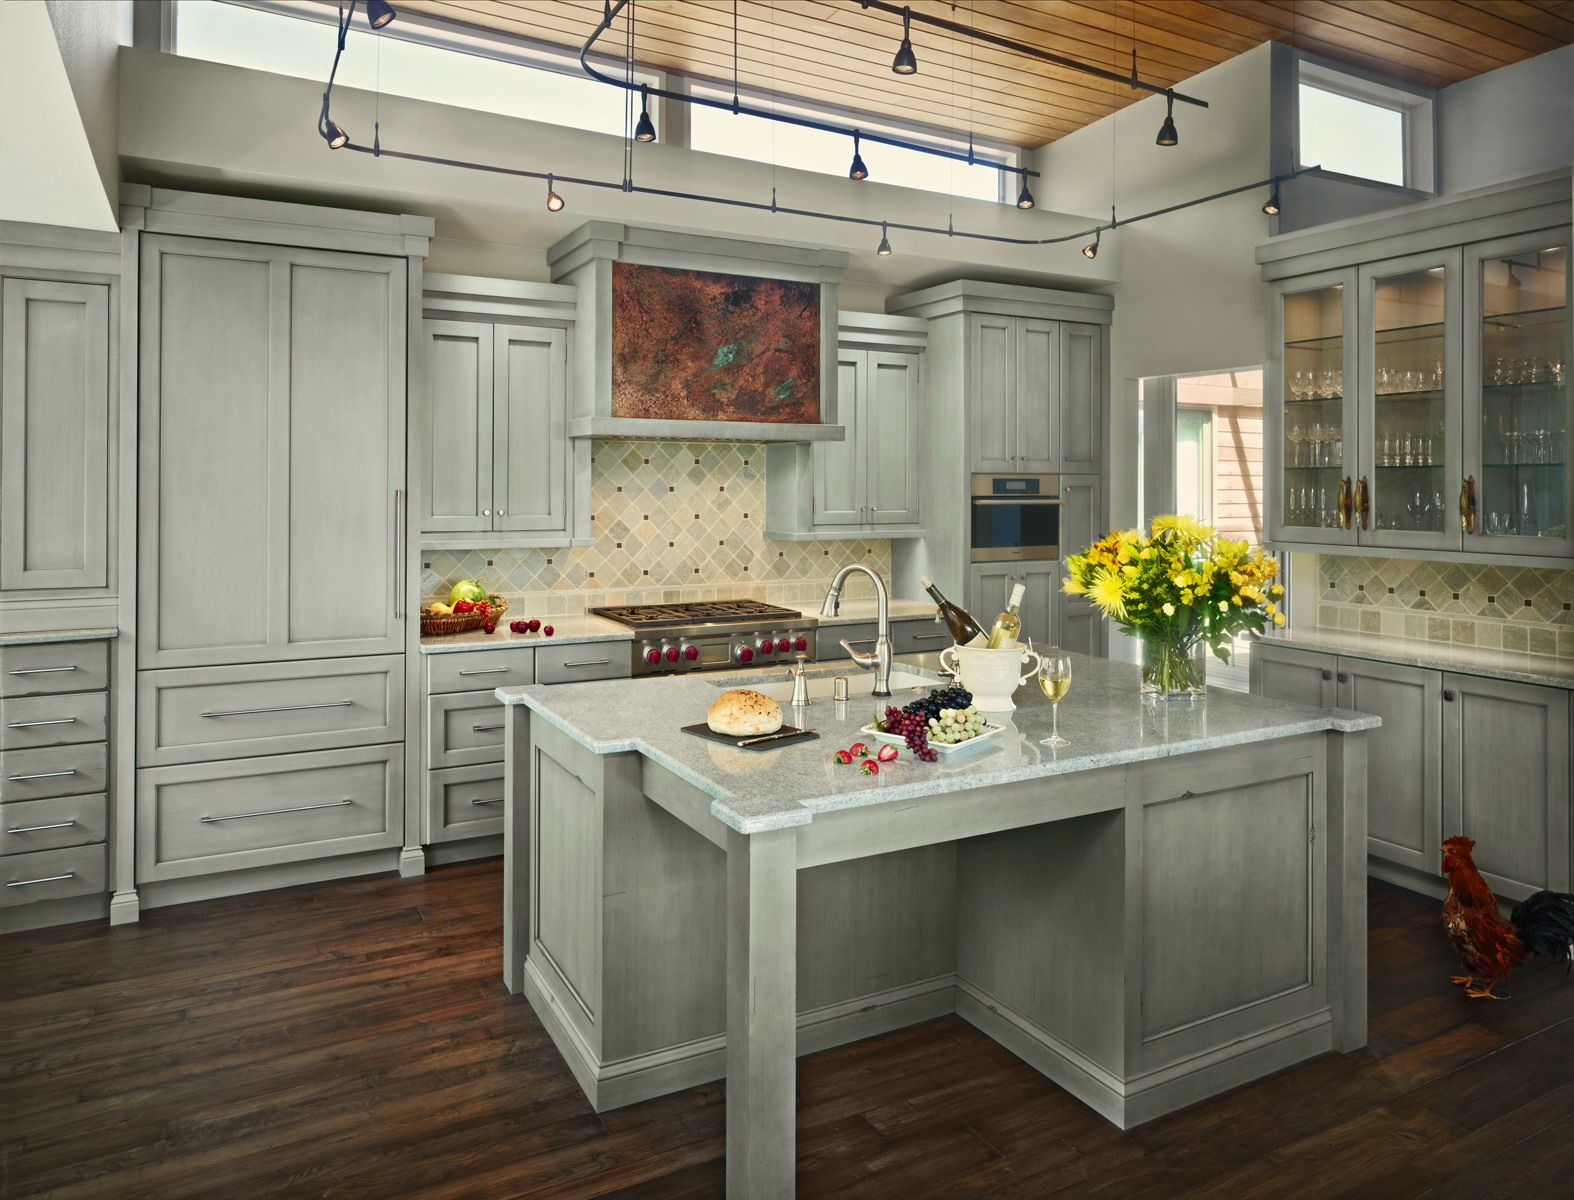 Awesome Simple And Transitional In Style, This Colorado Springs Kitchen Creates A  Peace And Harmony.